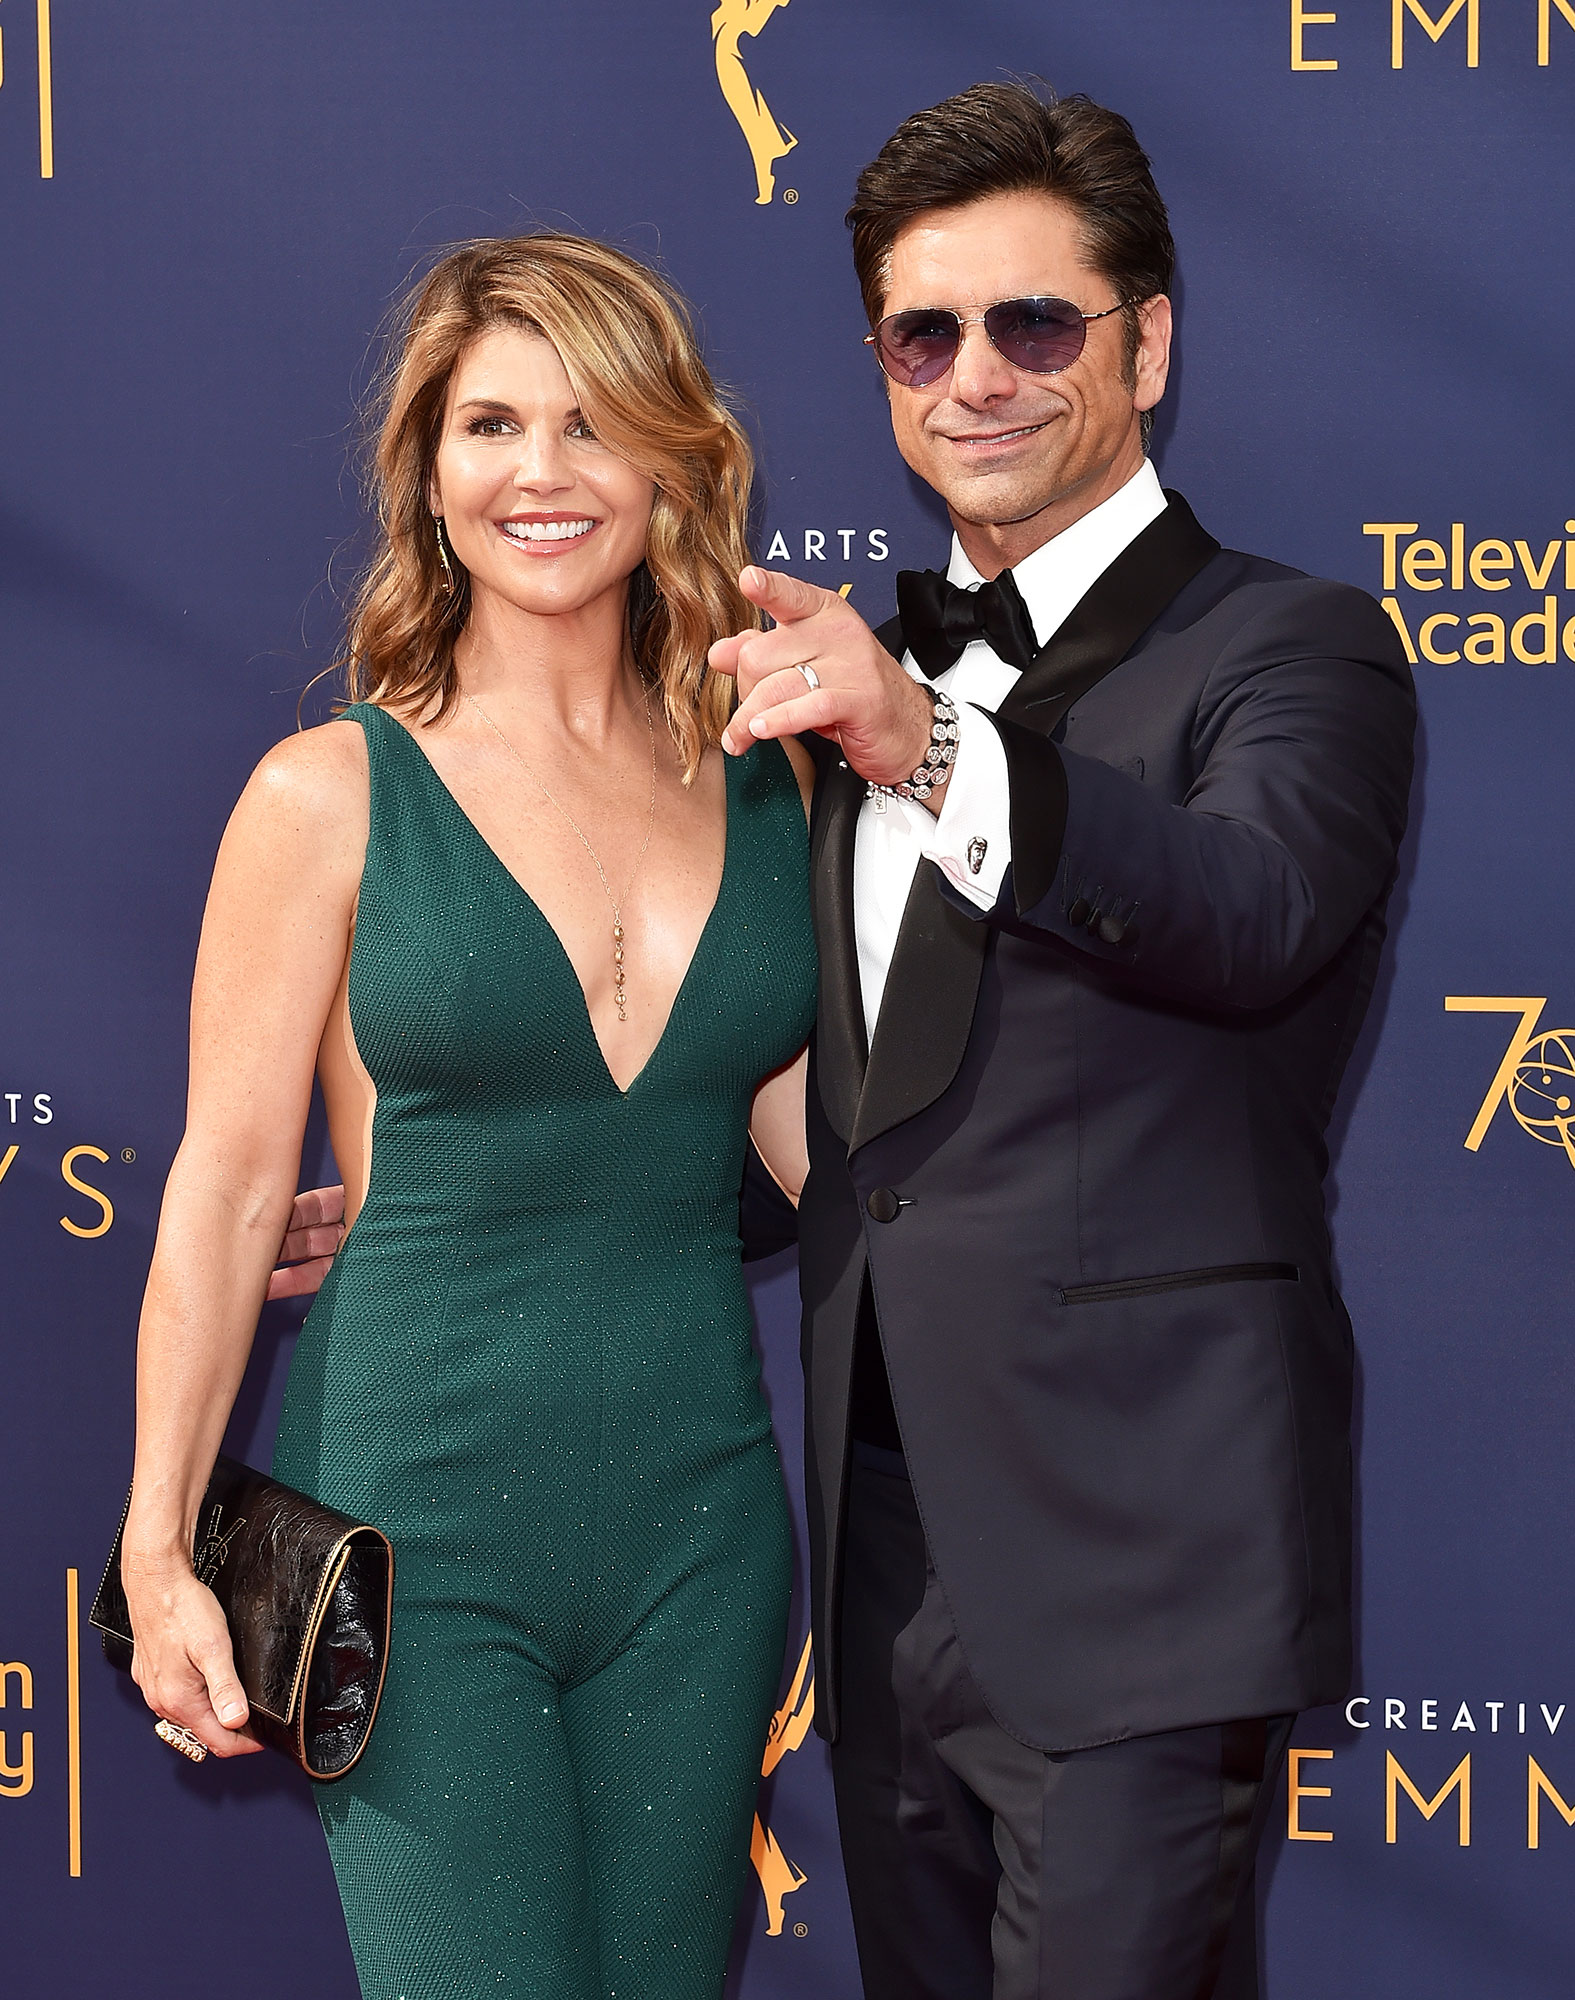 John Stamos Told Lori Loughlin She Should Write a Parenting Book